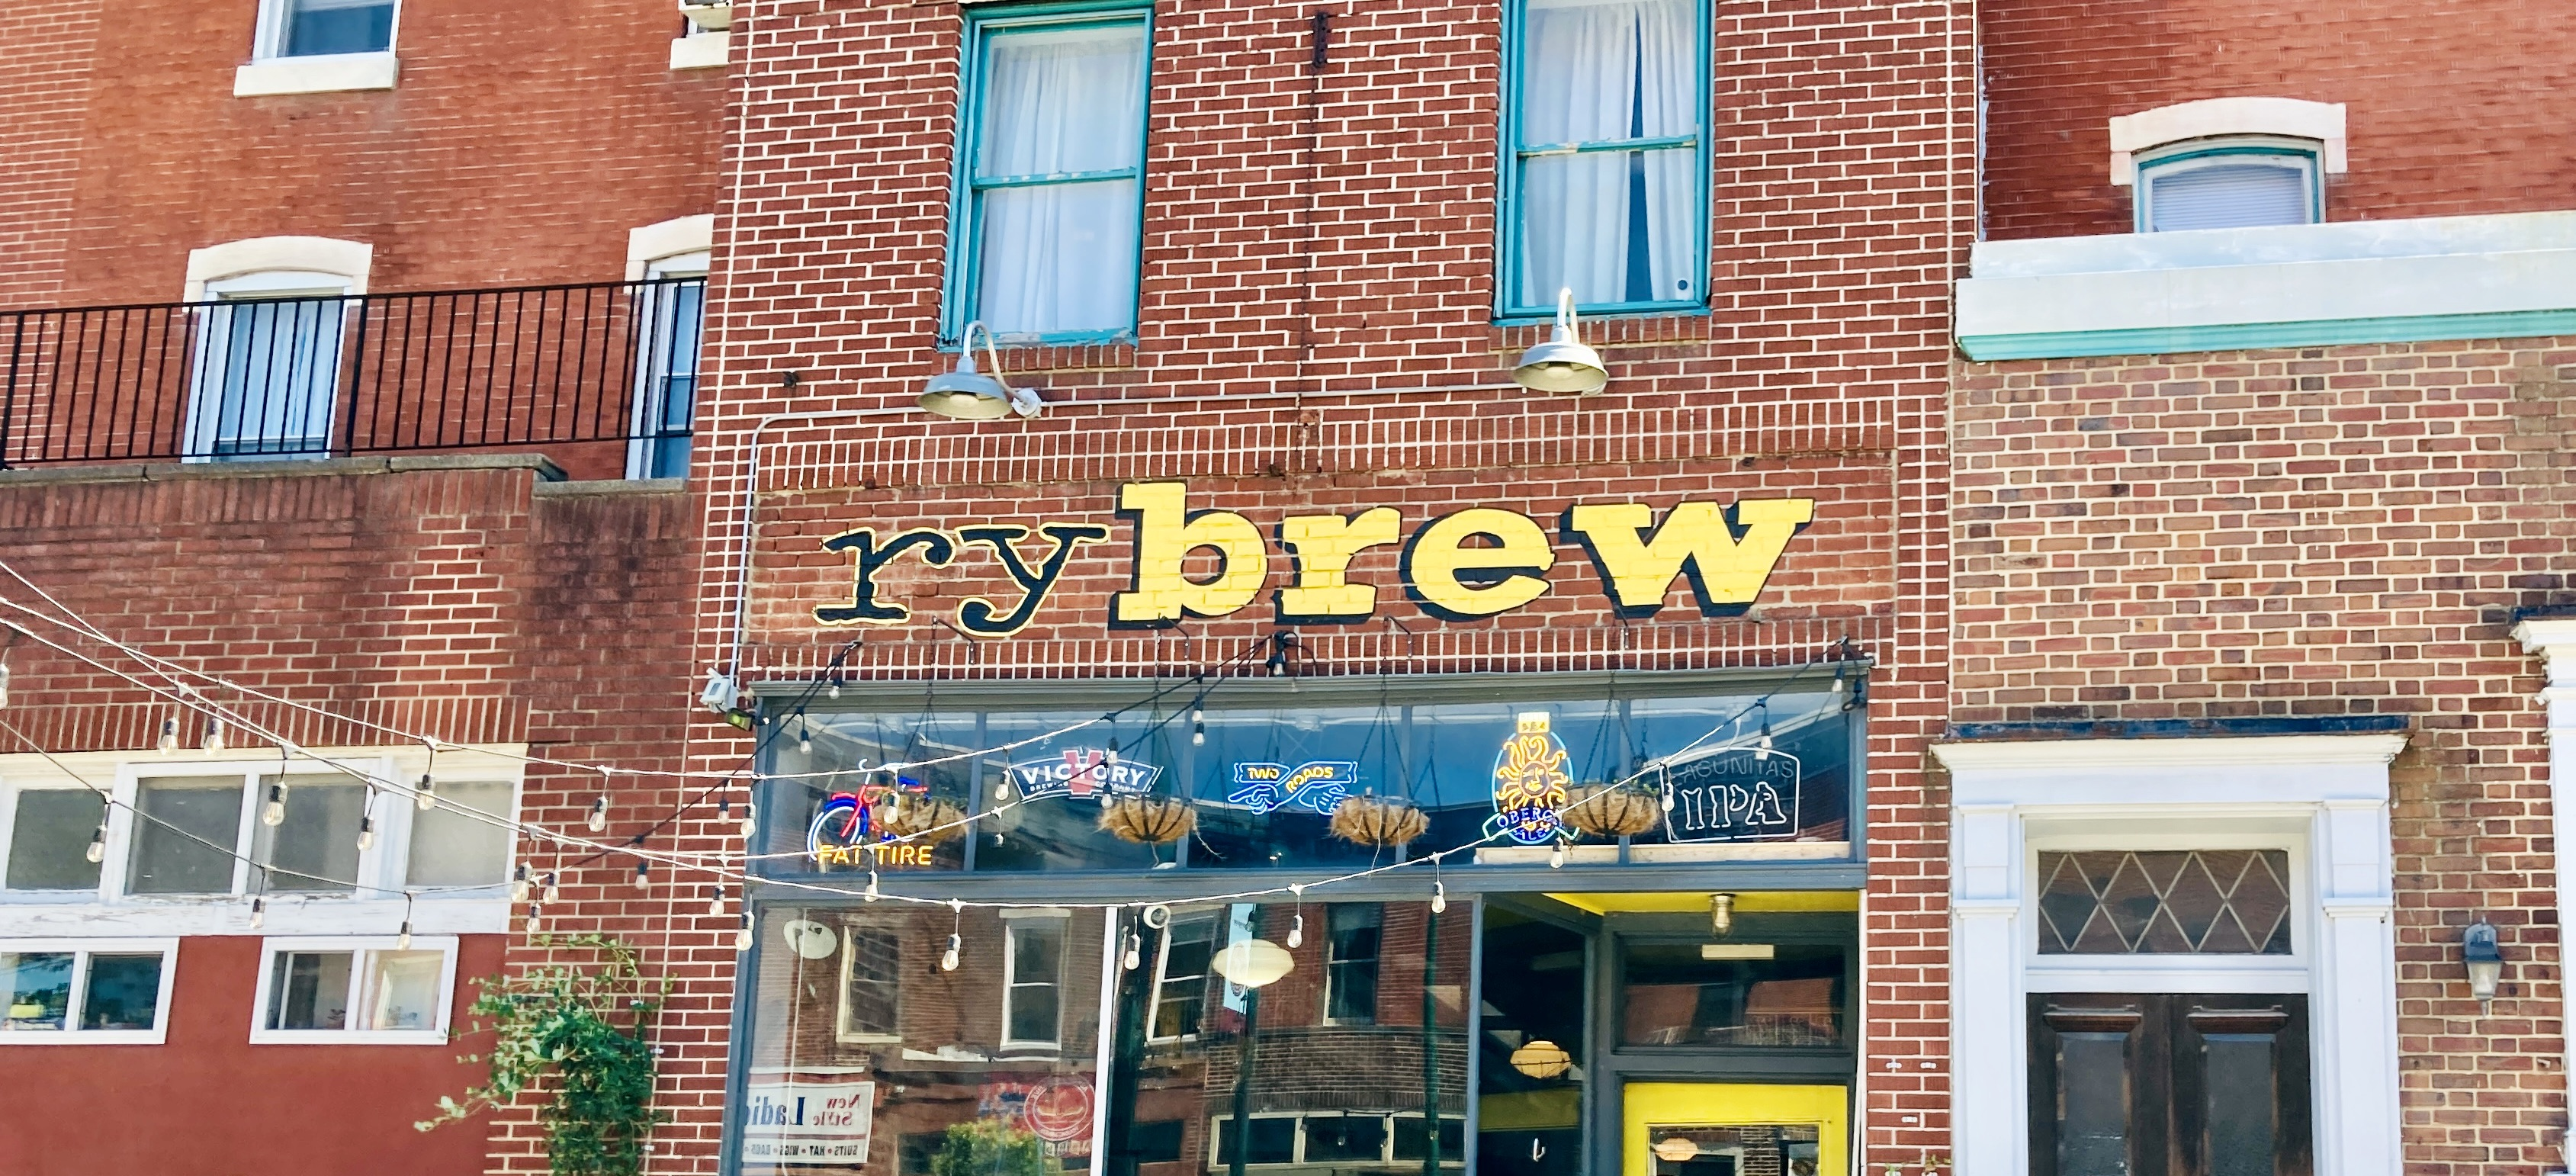 Rybrew on W Girard Ave, Philly